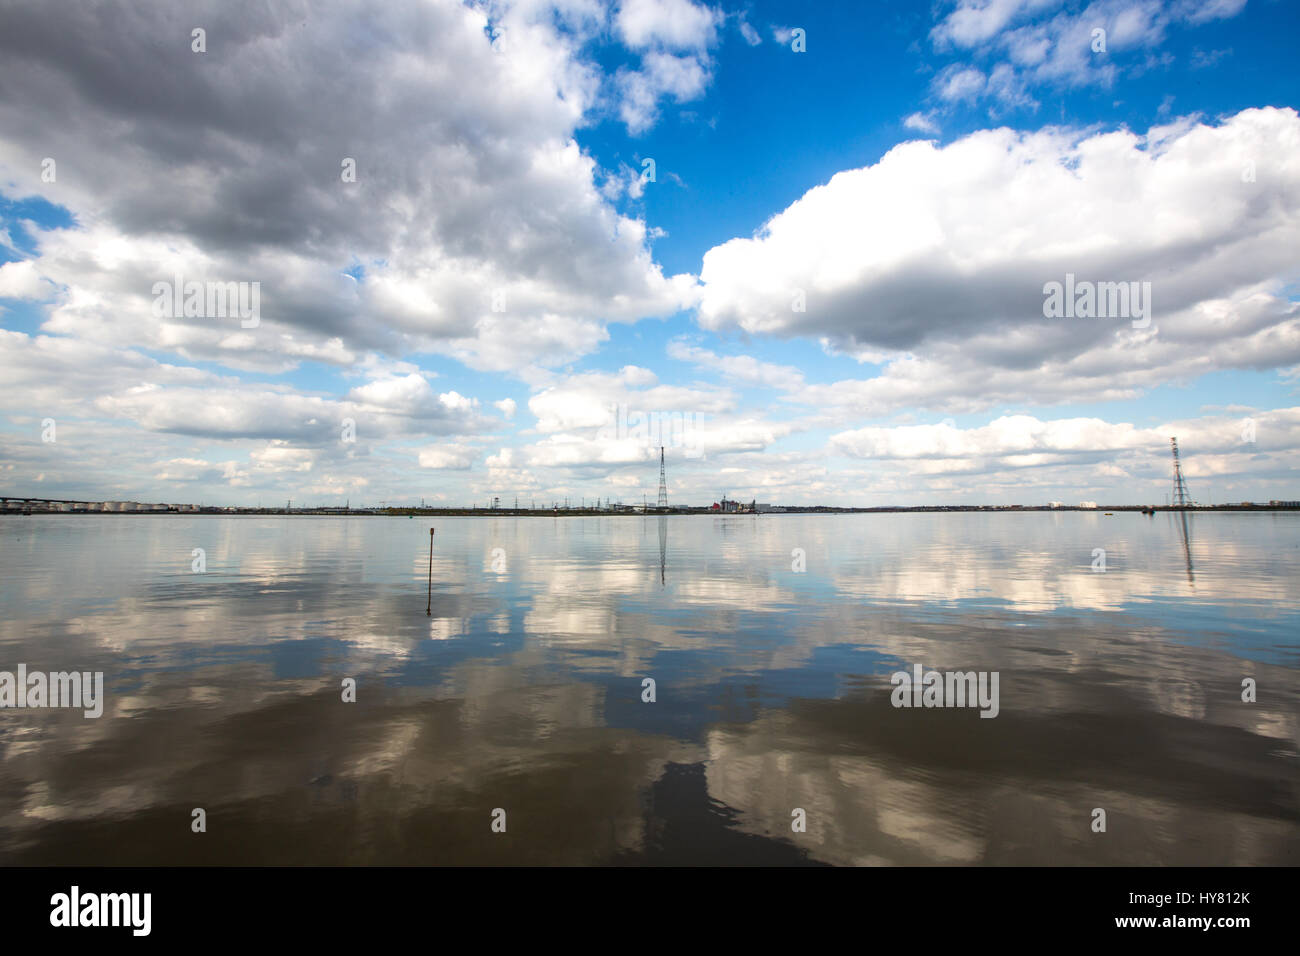 River Thames, London, UK. 2nd Apr, 2017. UK Weather. Fluffy clouds reflected in the calm waters of the Thames at - Stock Image